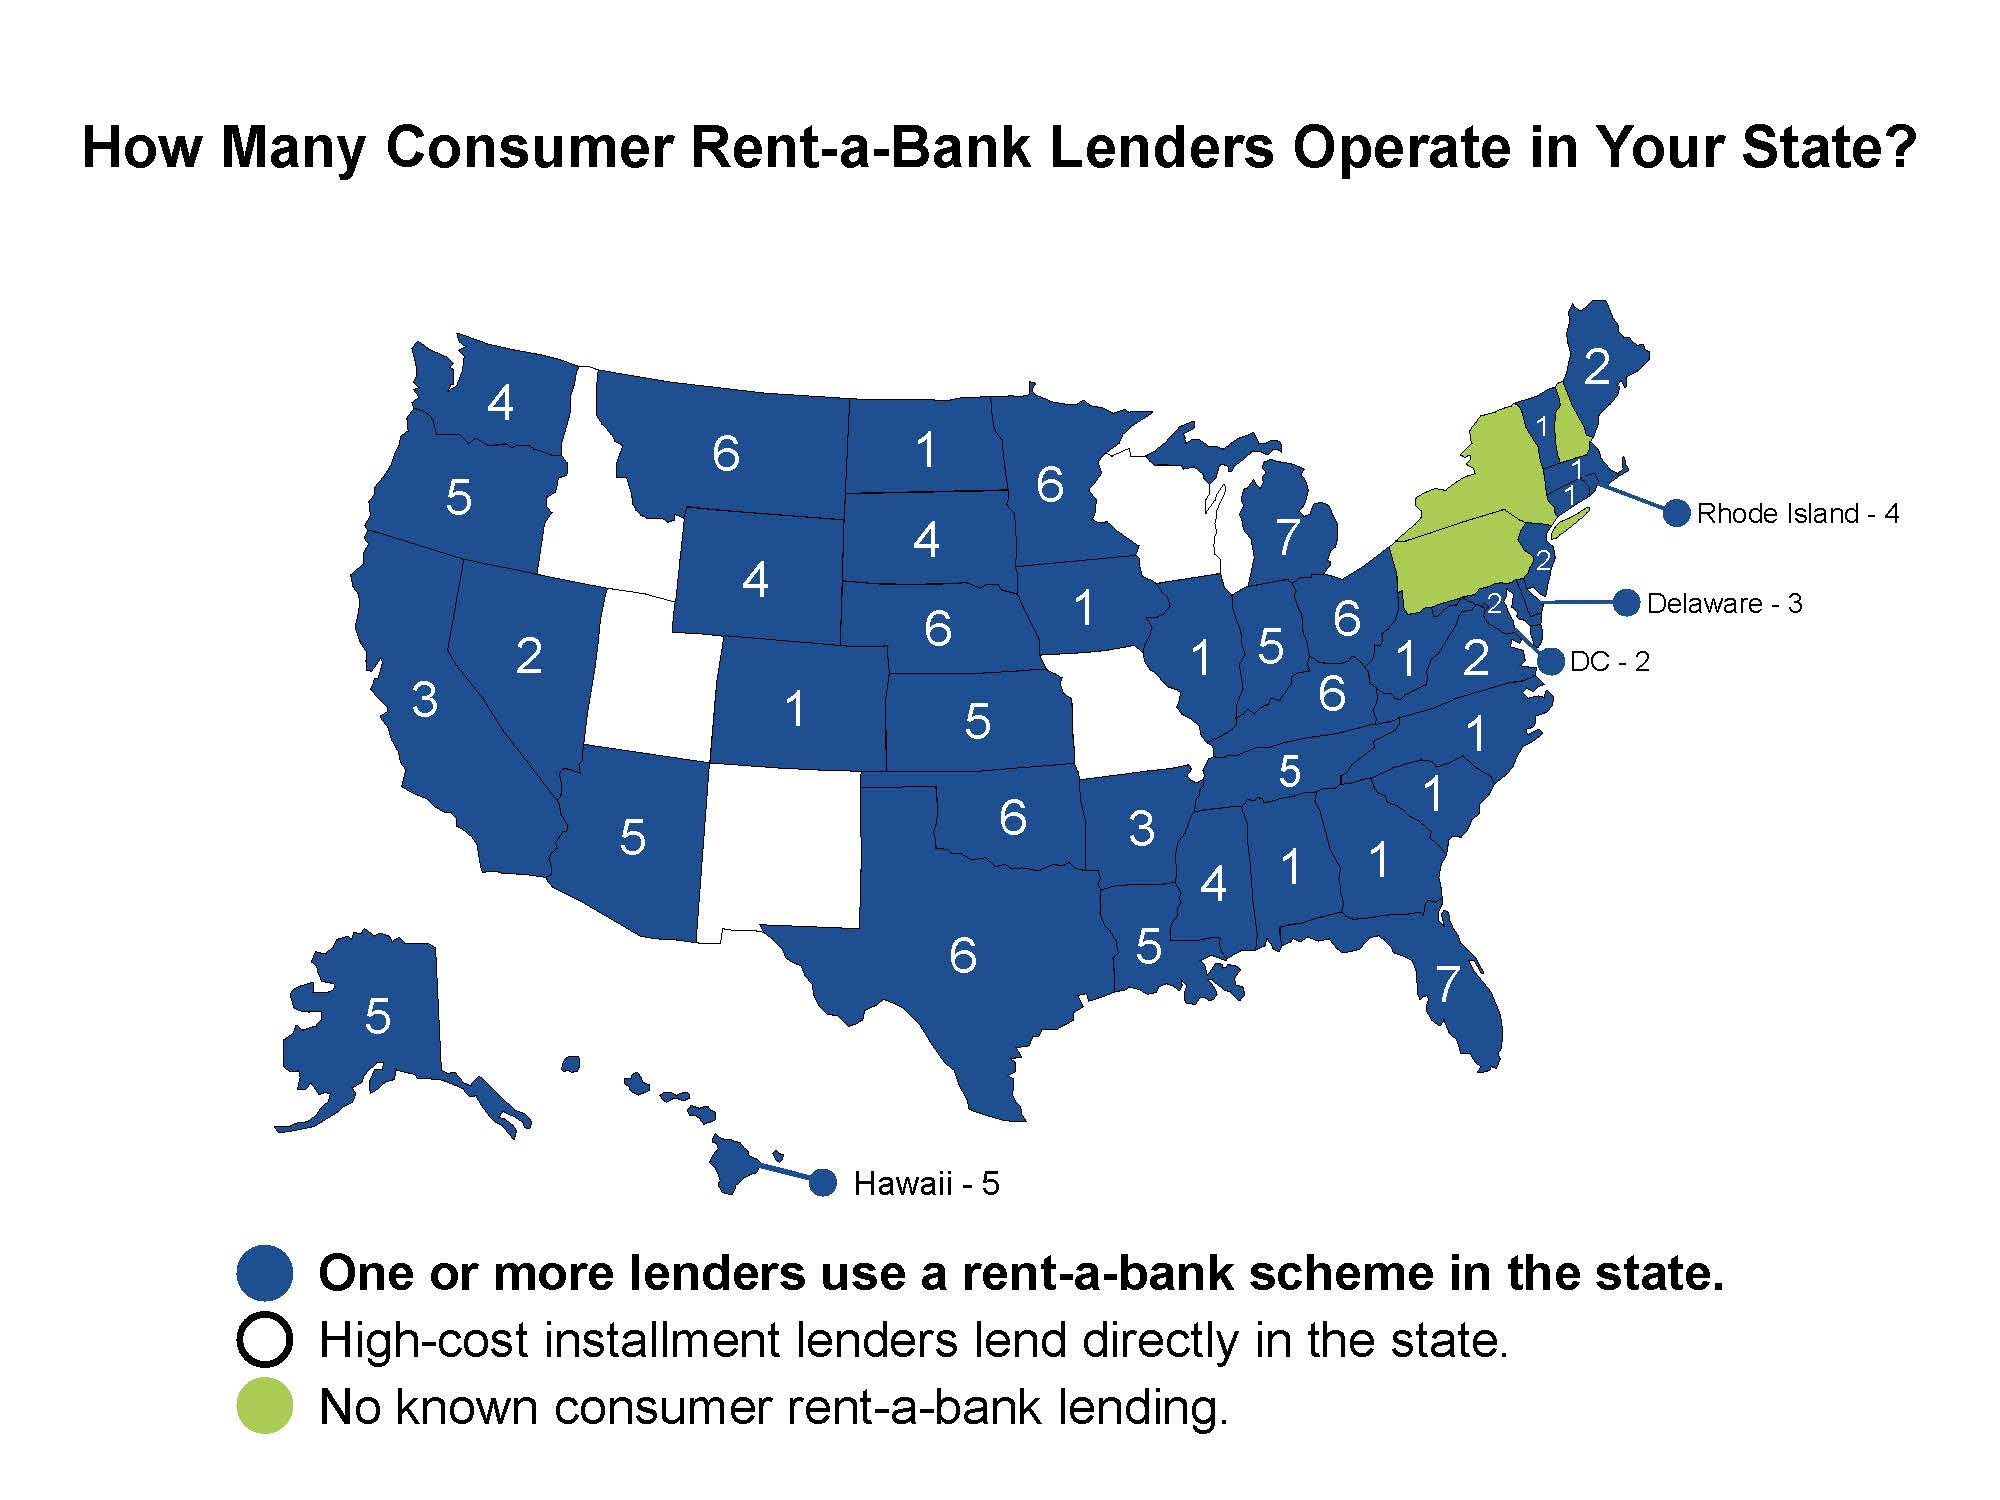 Map of the U.S. providing information on the number of Rent-a-Bank Lenders operate in each state.